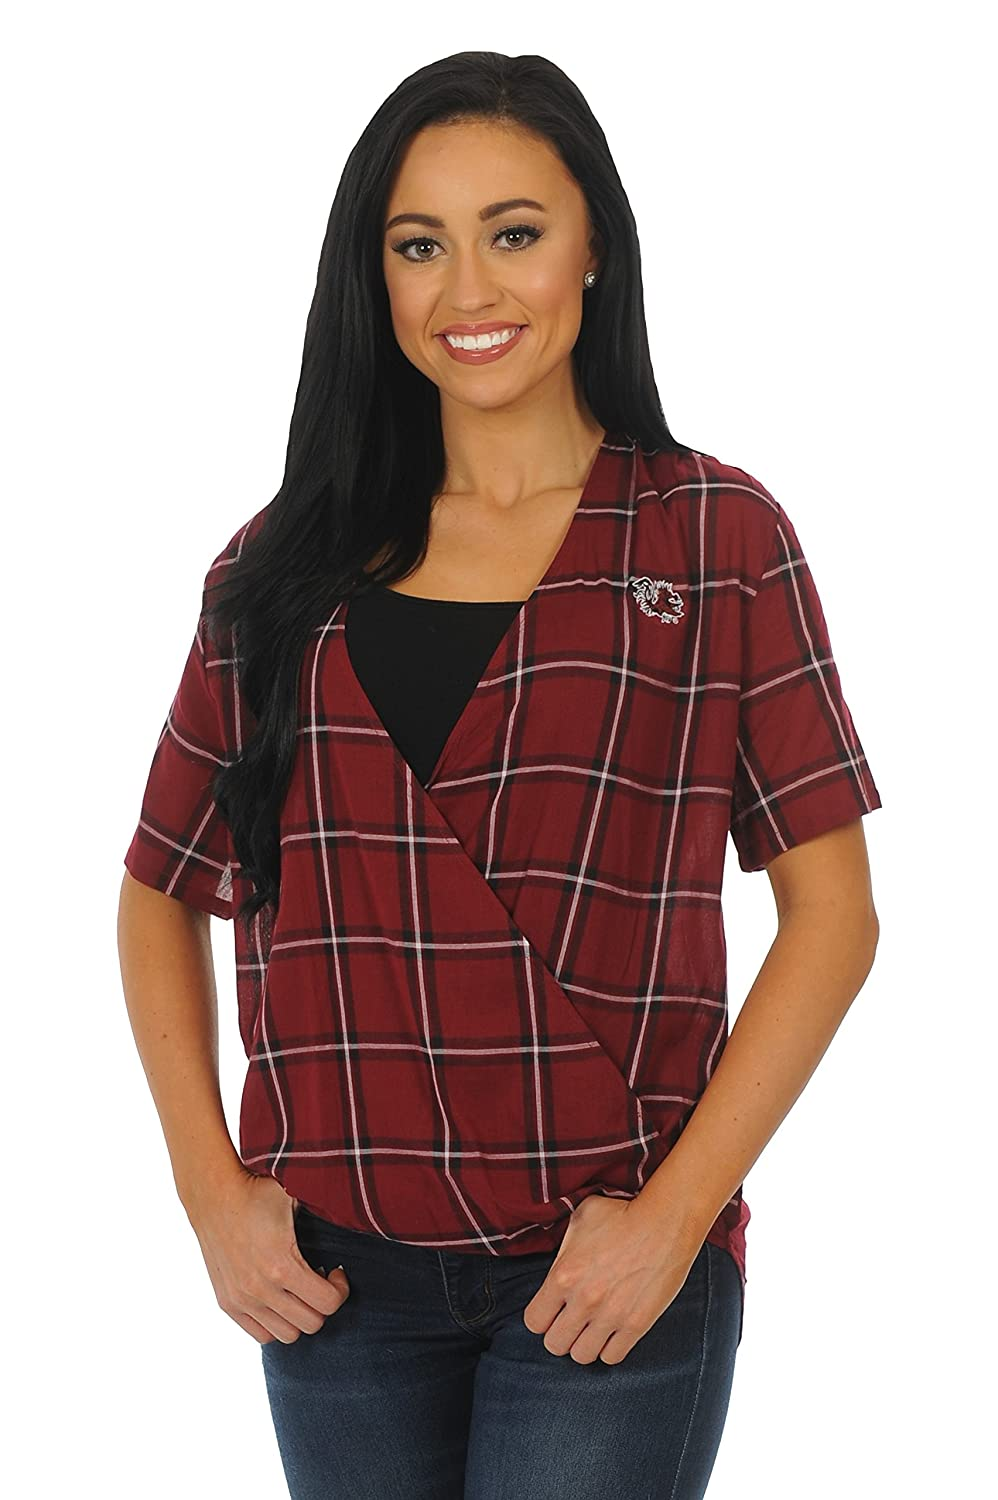 NCAA Womens Short Sleeve Plaid Wrap Top